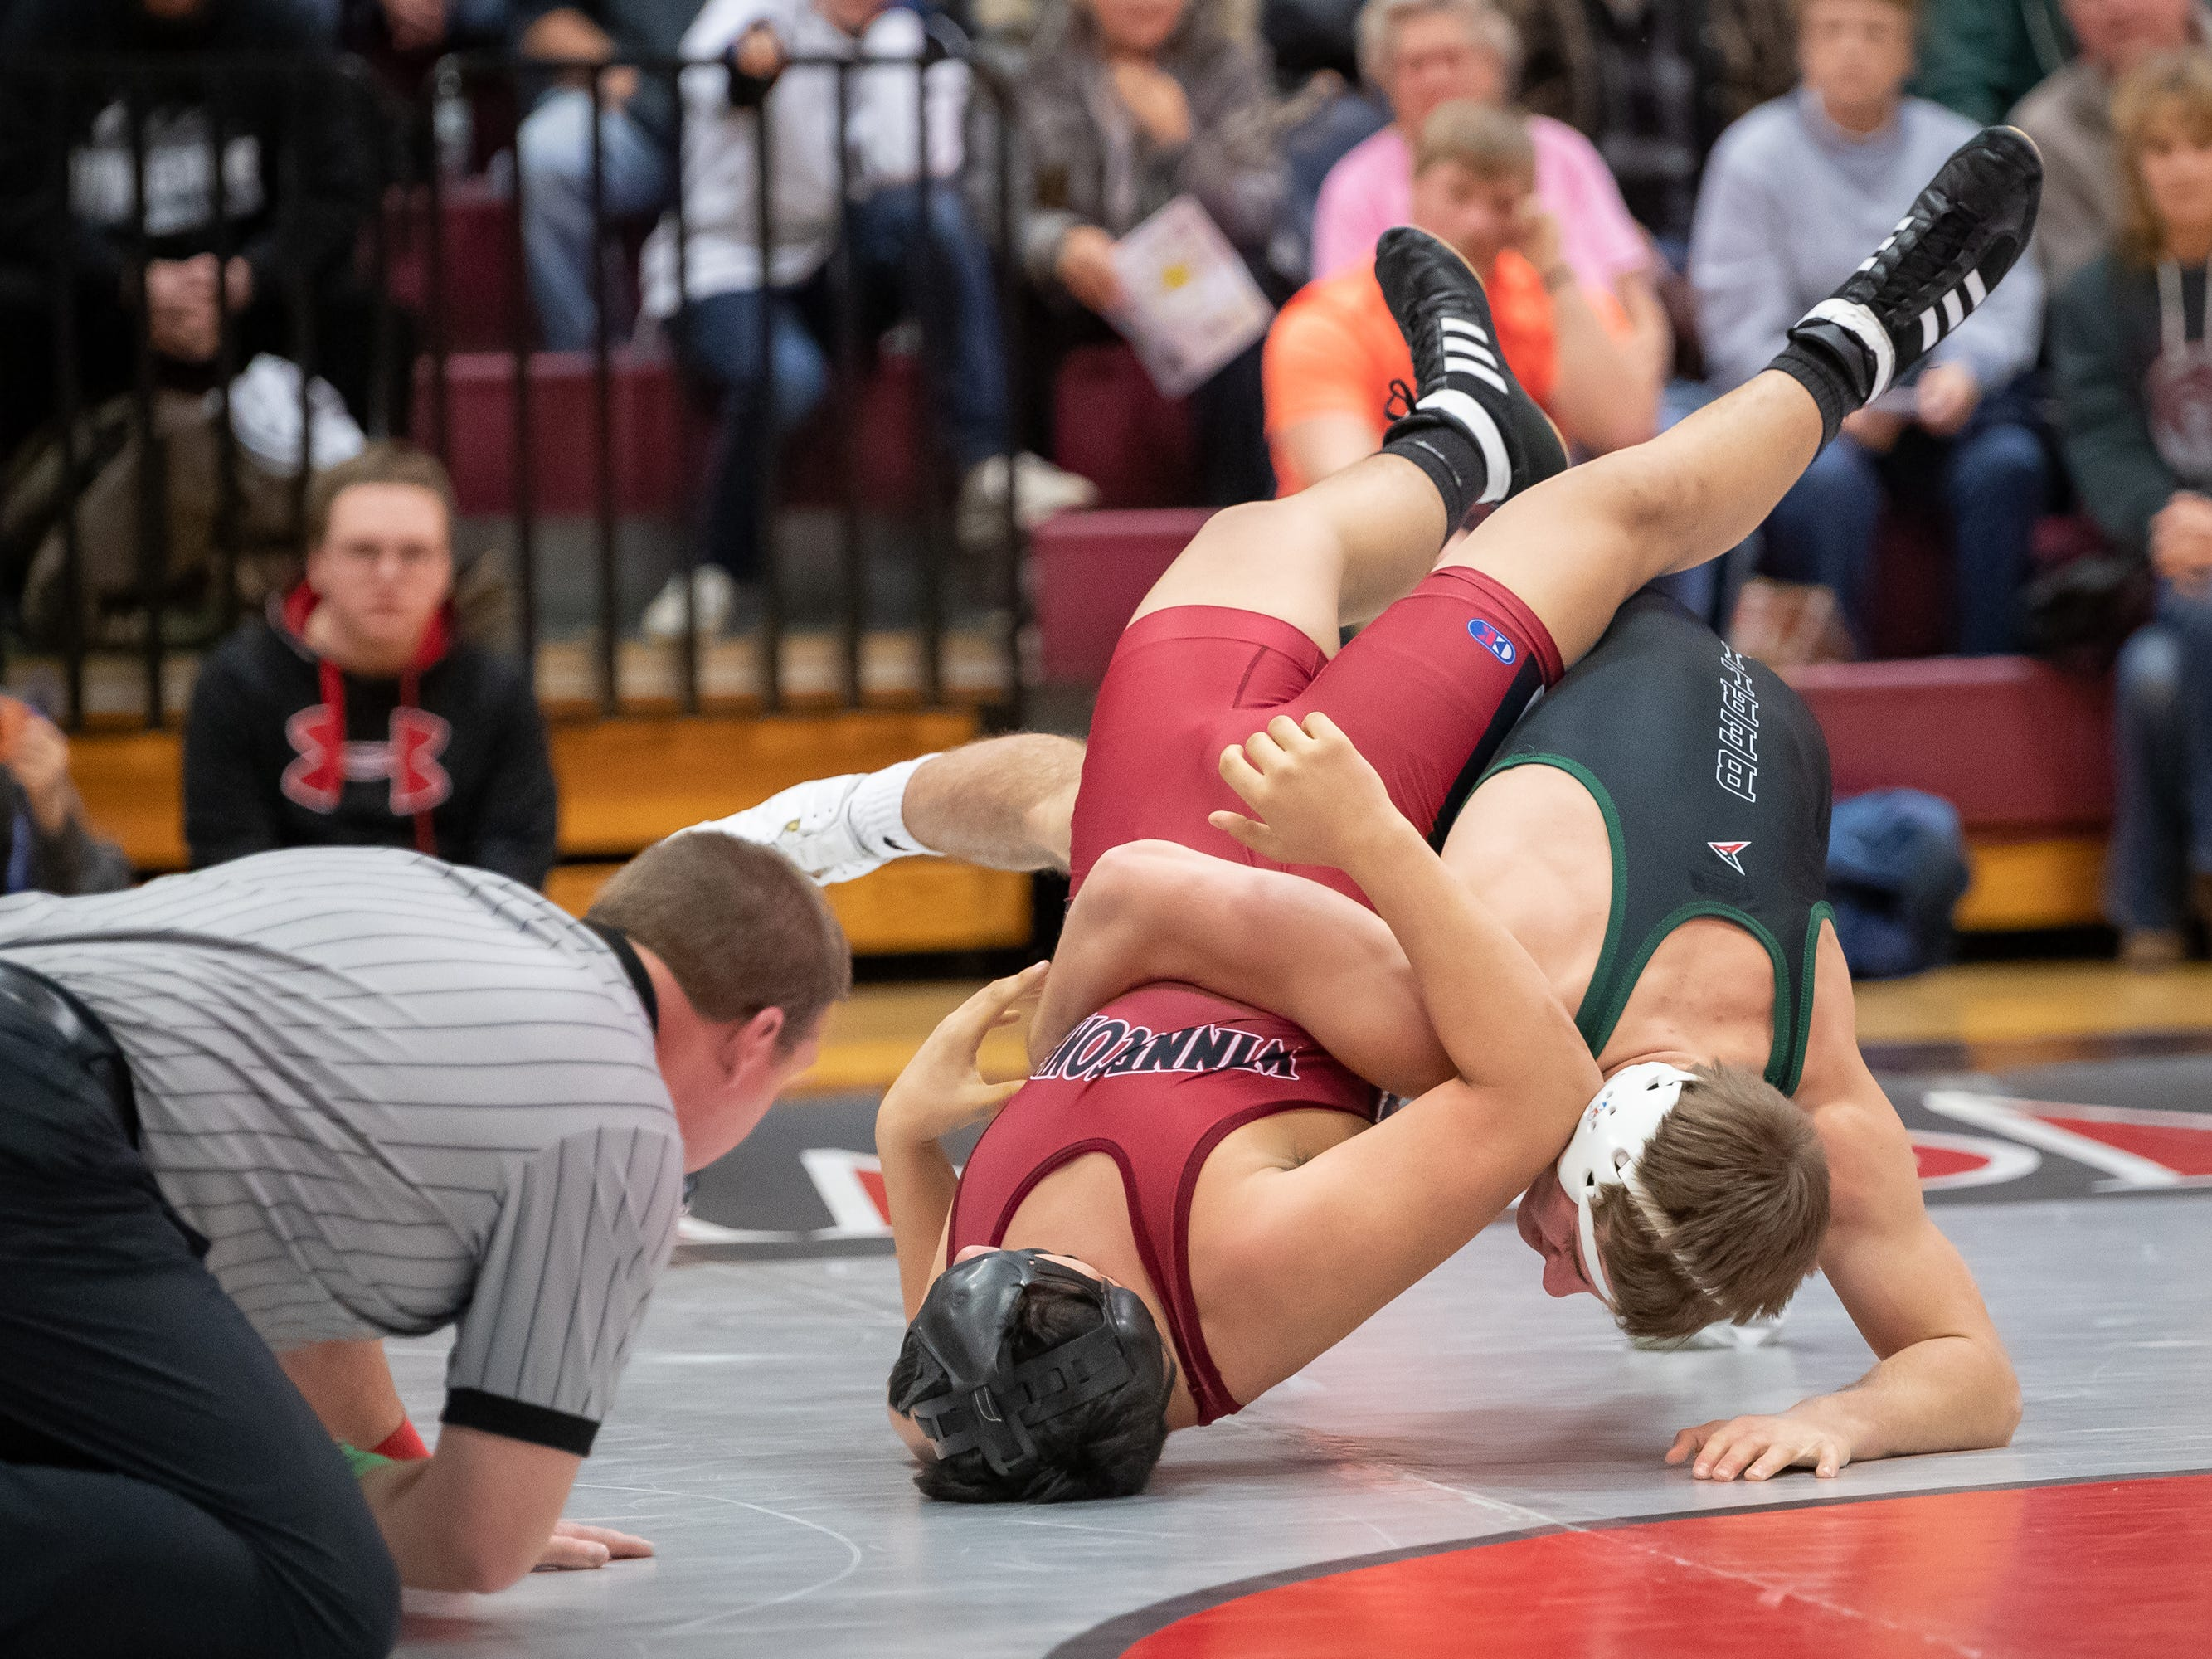 William Spanbauer of Winneconne wrestles Preston Morgan of Berlin in the 160-pound weight class. The Winneconne Wolves hosted the Berlin Indians in an East Central Conference wrestling match Thursday, Jan. 10, 2019.